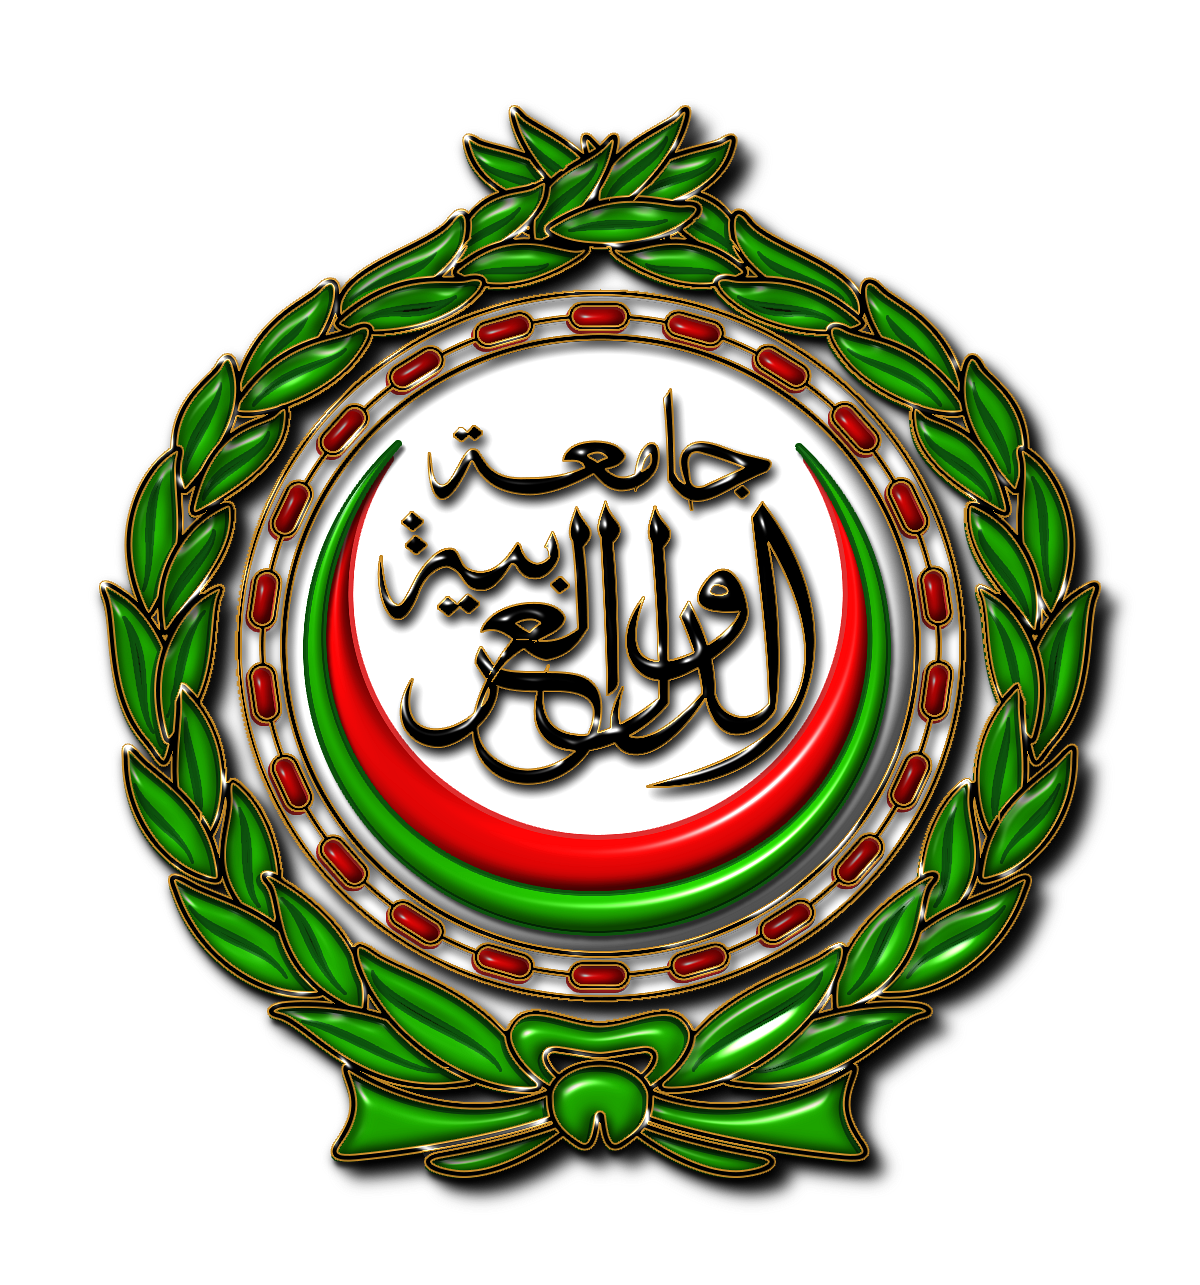 %ef%bb%bffailure of the arab league The arab league is a political organization aiming to help integrate its members economically, and solve in-between conflicts without asking for foreign aid it possesses elements of a state representative parliament, while issues of foreign affairs are usually dealt under the united nations supervision.